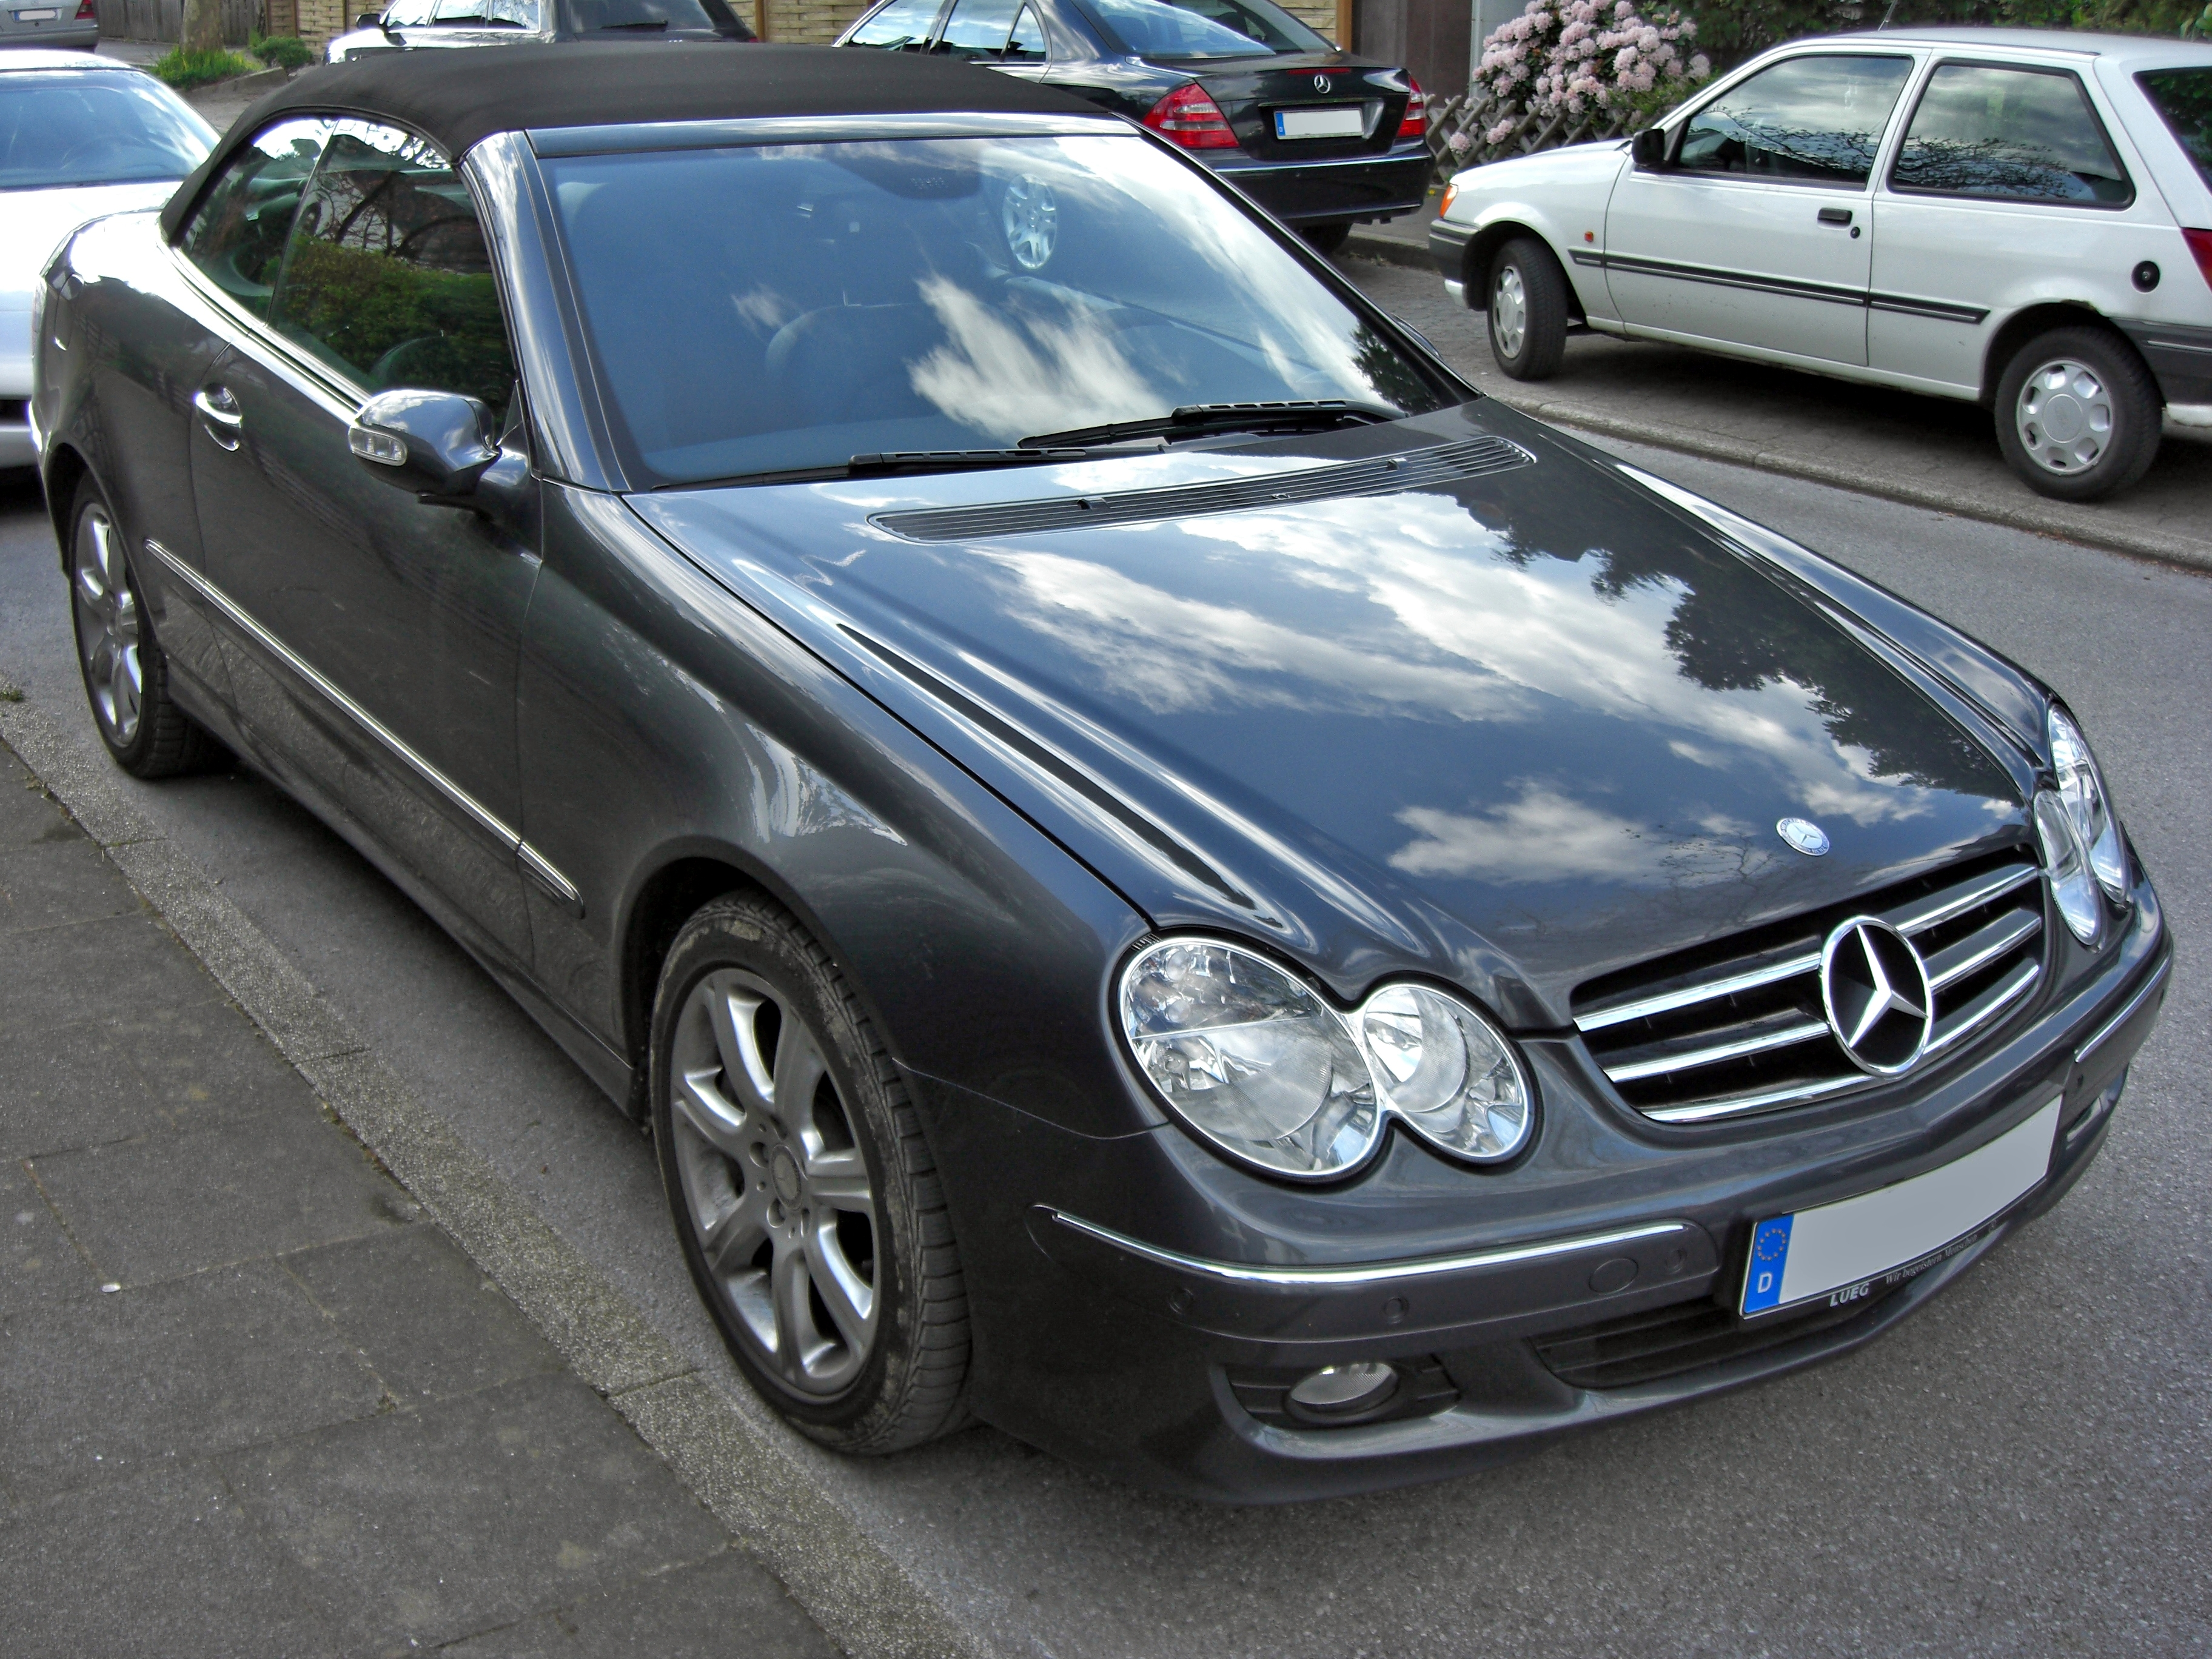 file mercedes clk 320 cdi facelift wikimedia. Black Bedroom Furniture Sets. Home Design Ideas